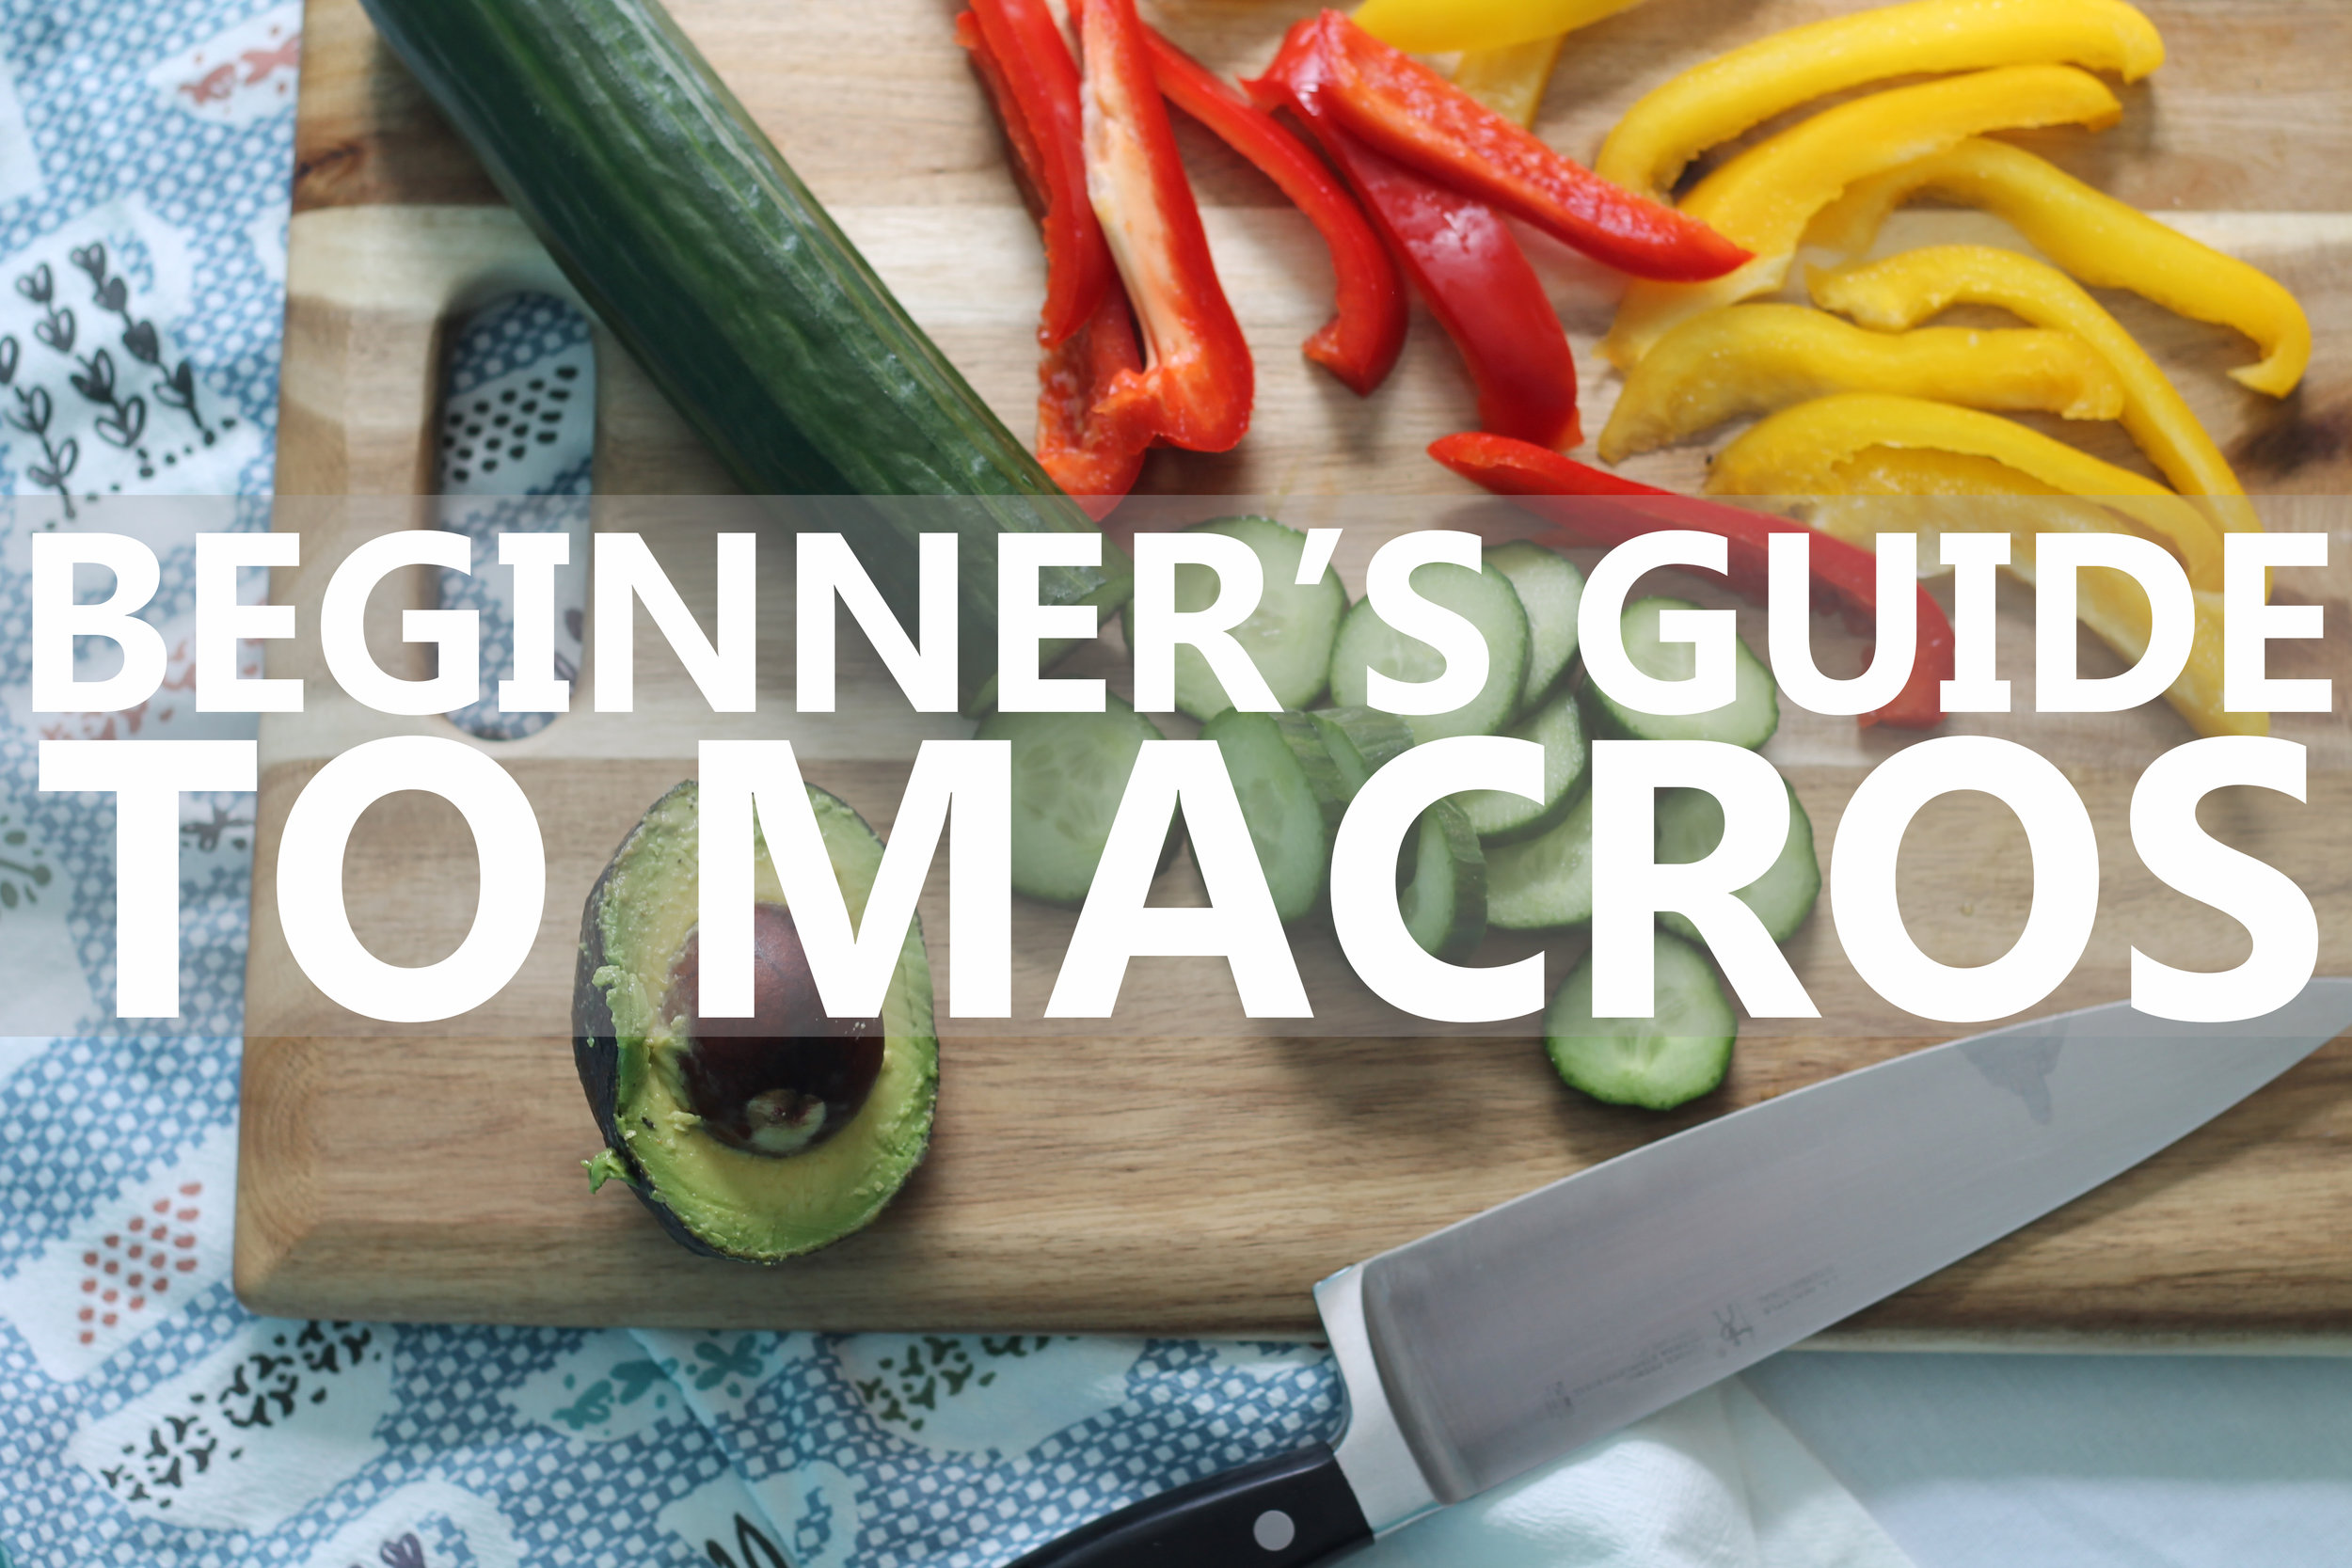 Beginner's Guide to Macros.jpg